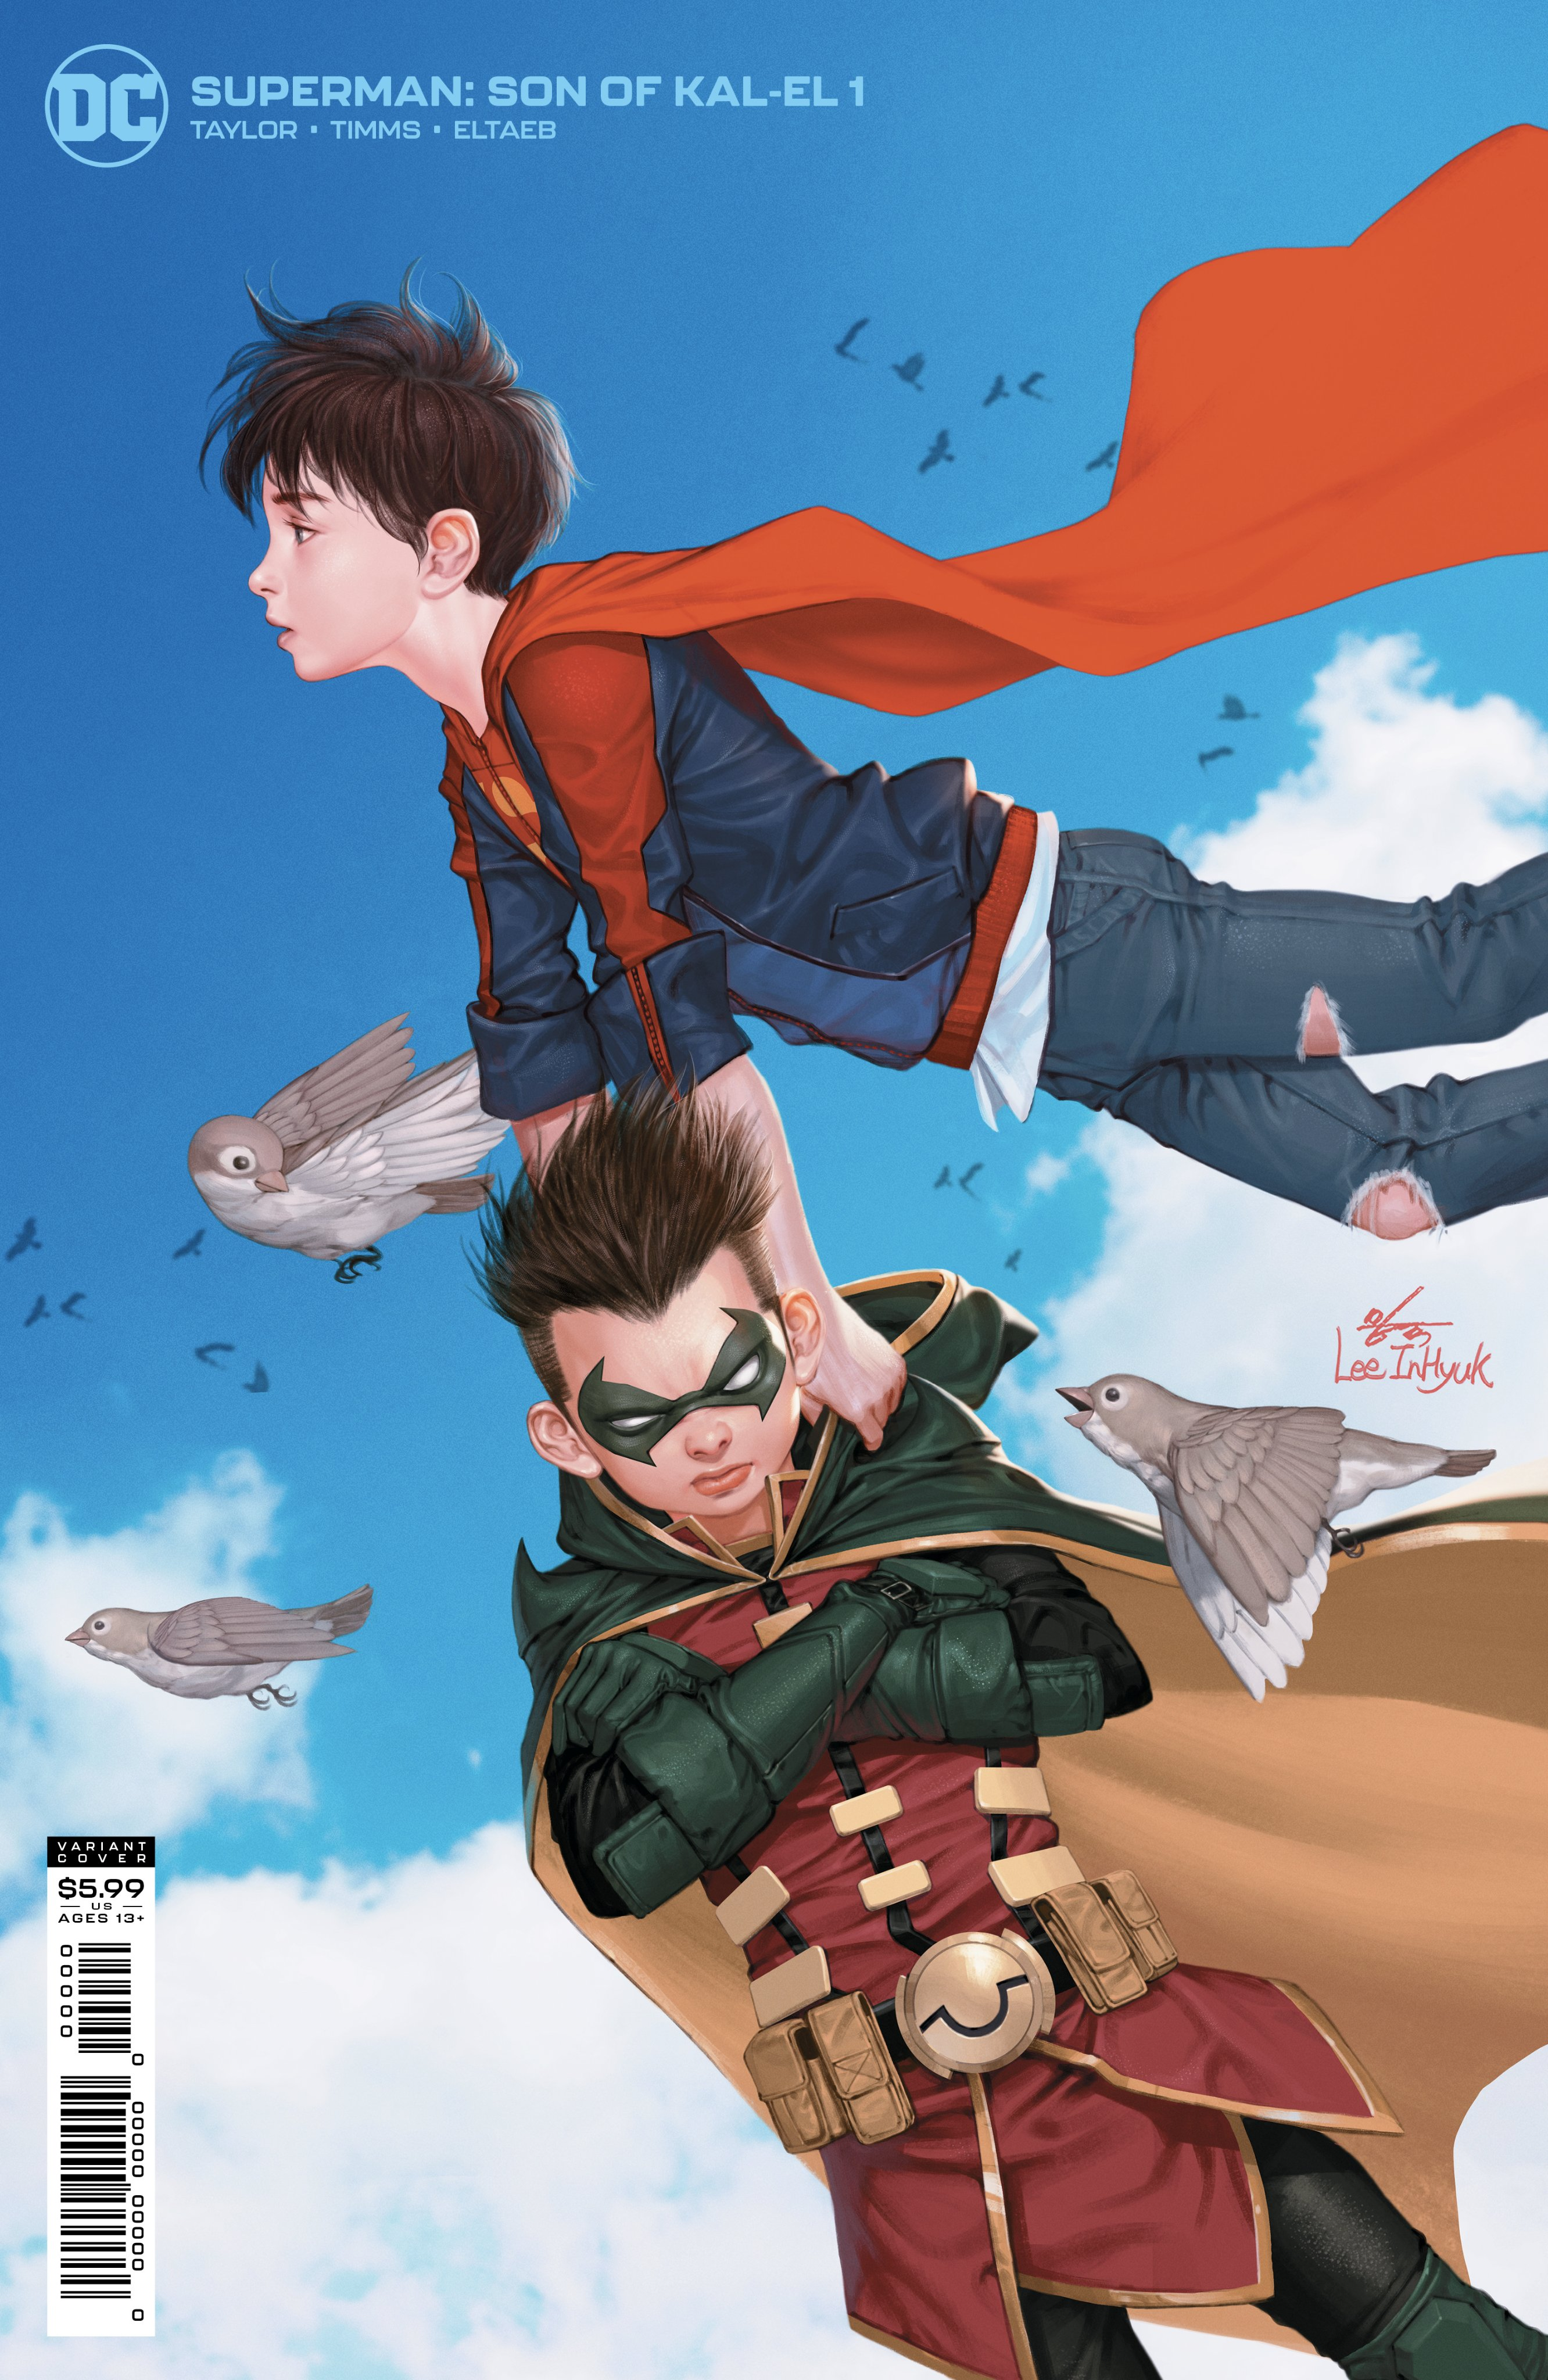 Superman Son of Kal-El Issue One Variant Cover: Lee Inyuk